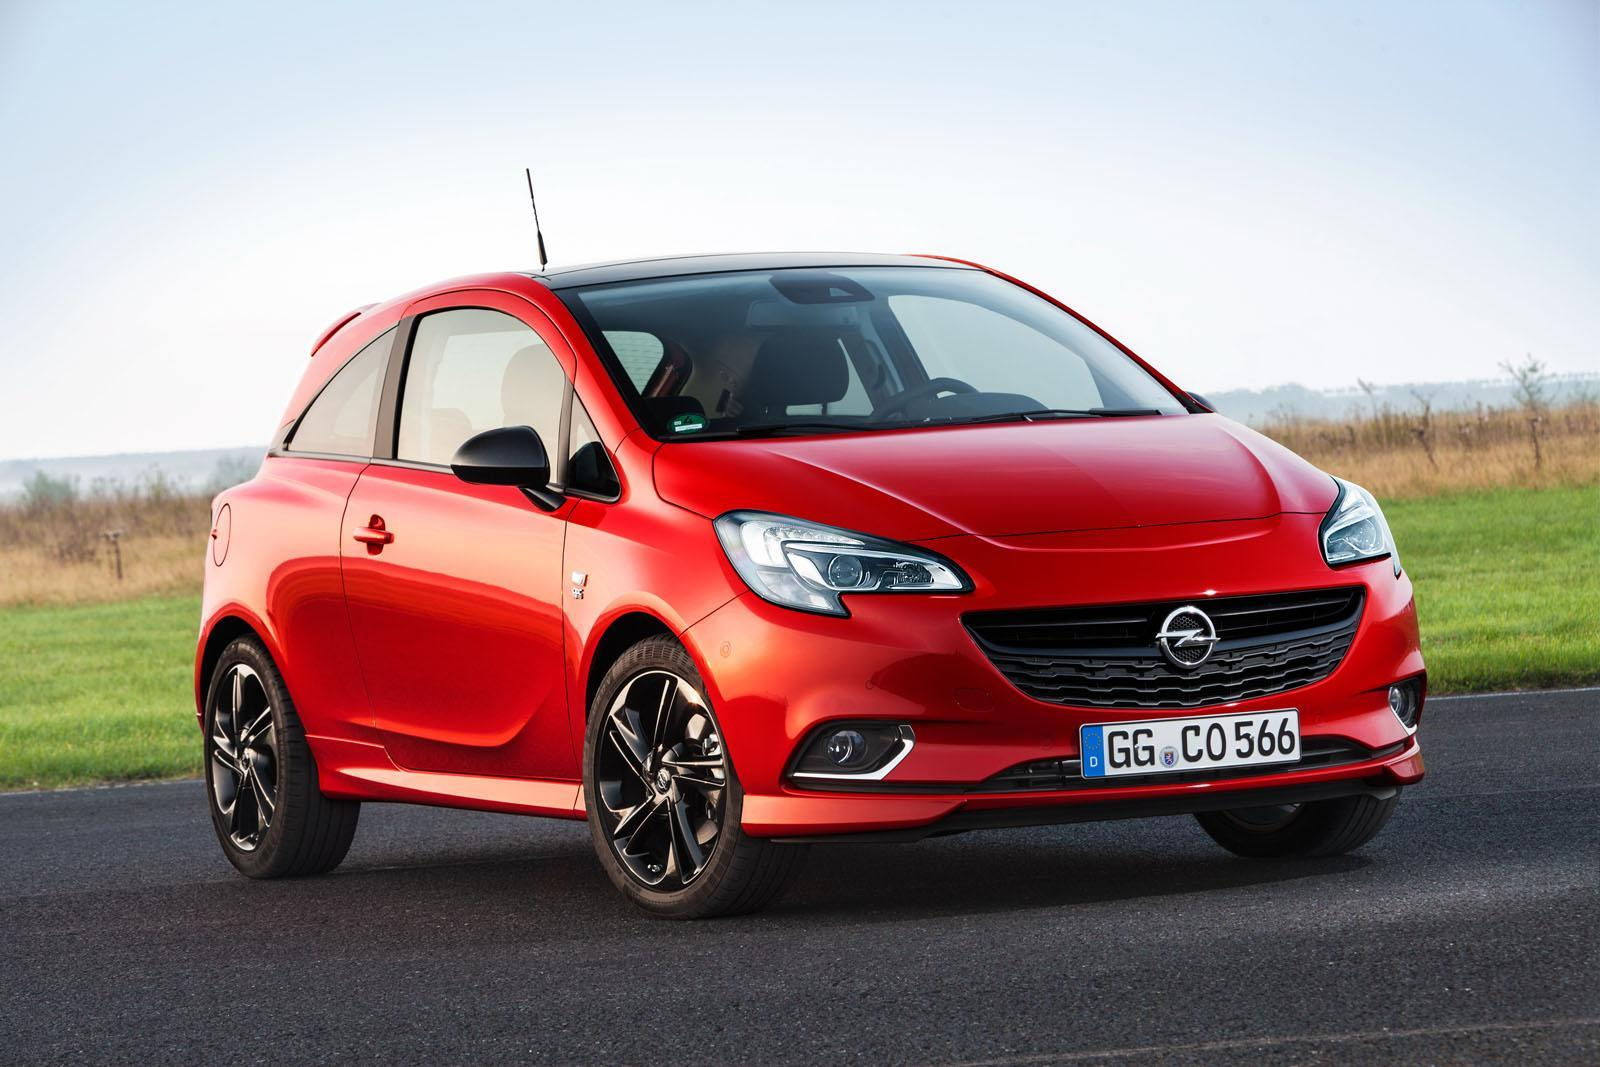 new opel corsa gets 1 4 turbo version with 150 hp. Black Bedroom Furniture Sets. Home Design Ideas